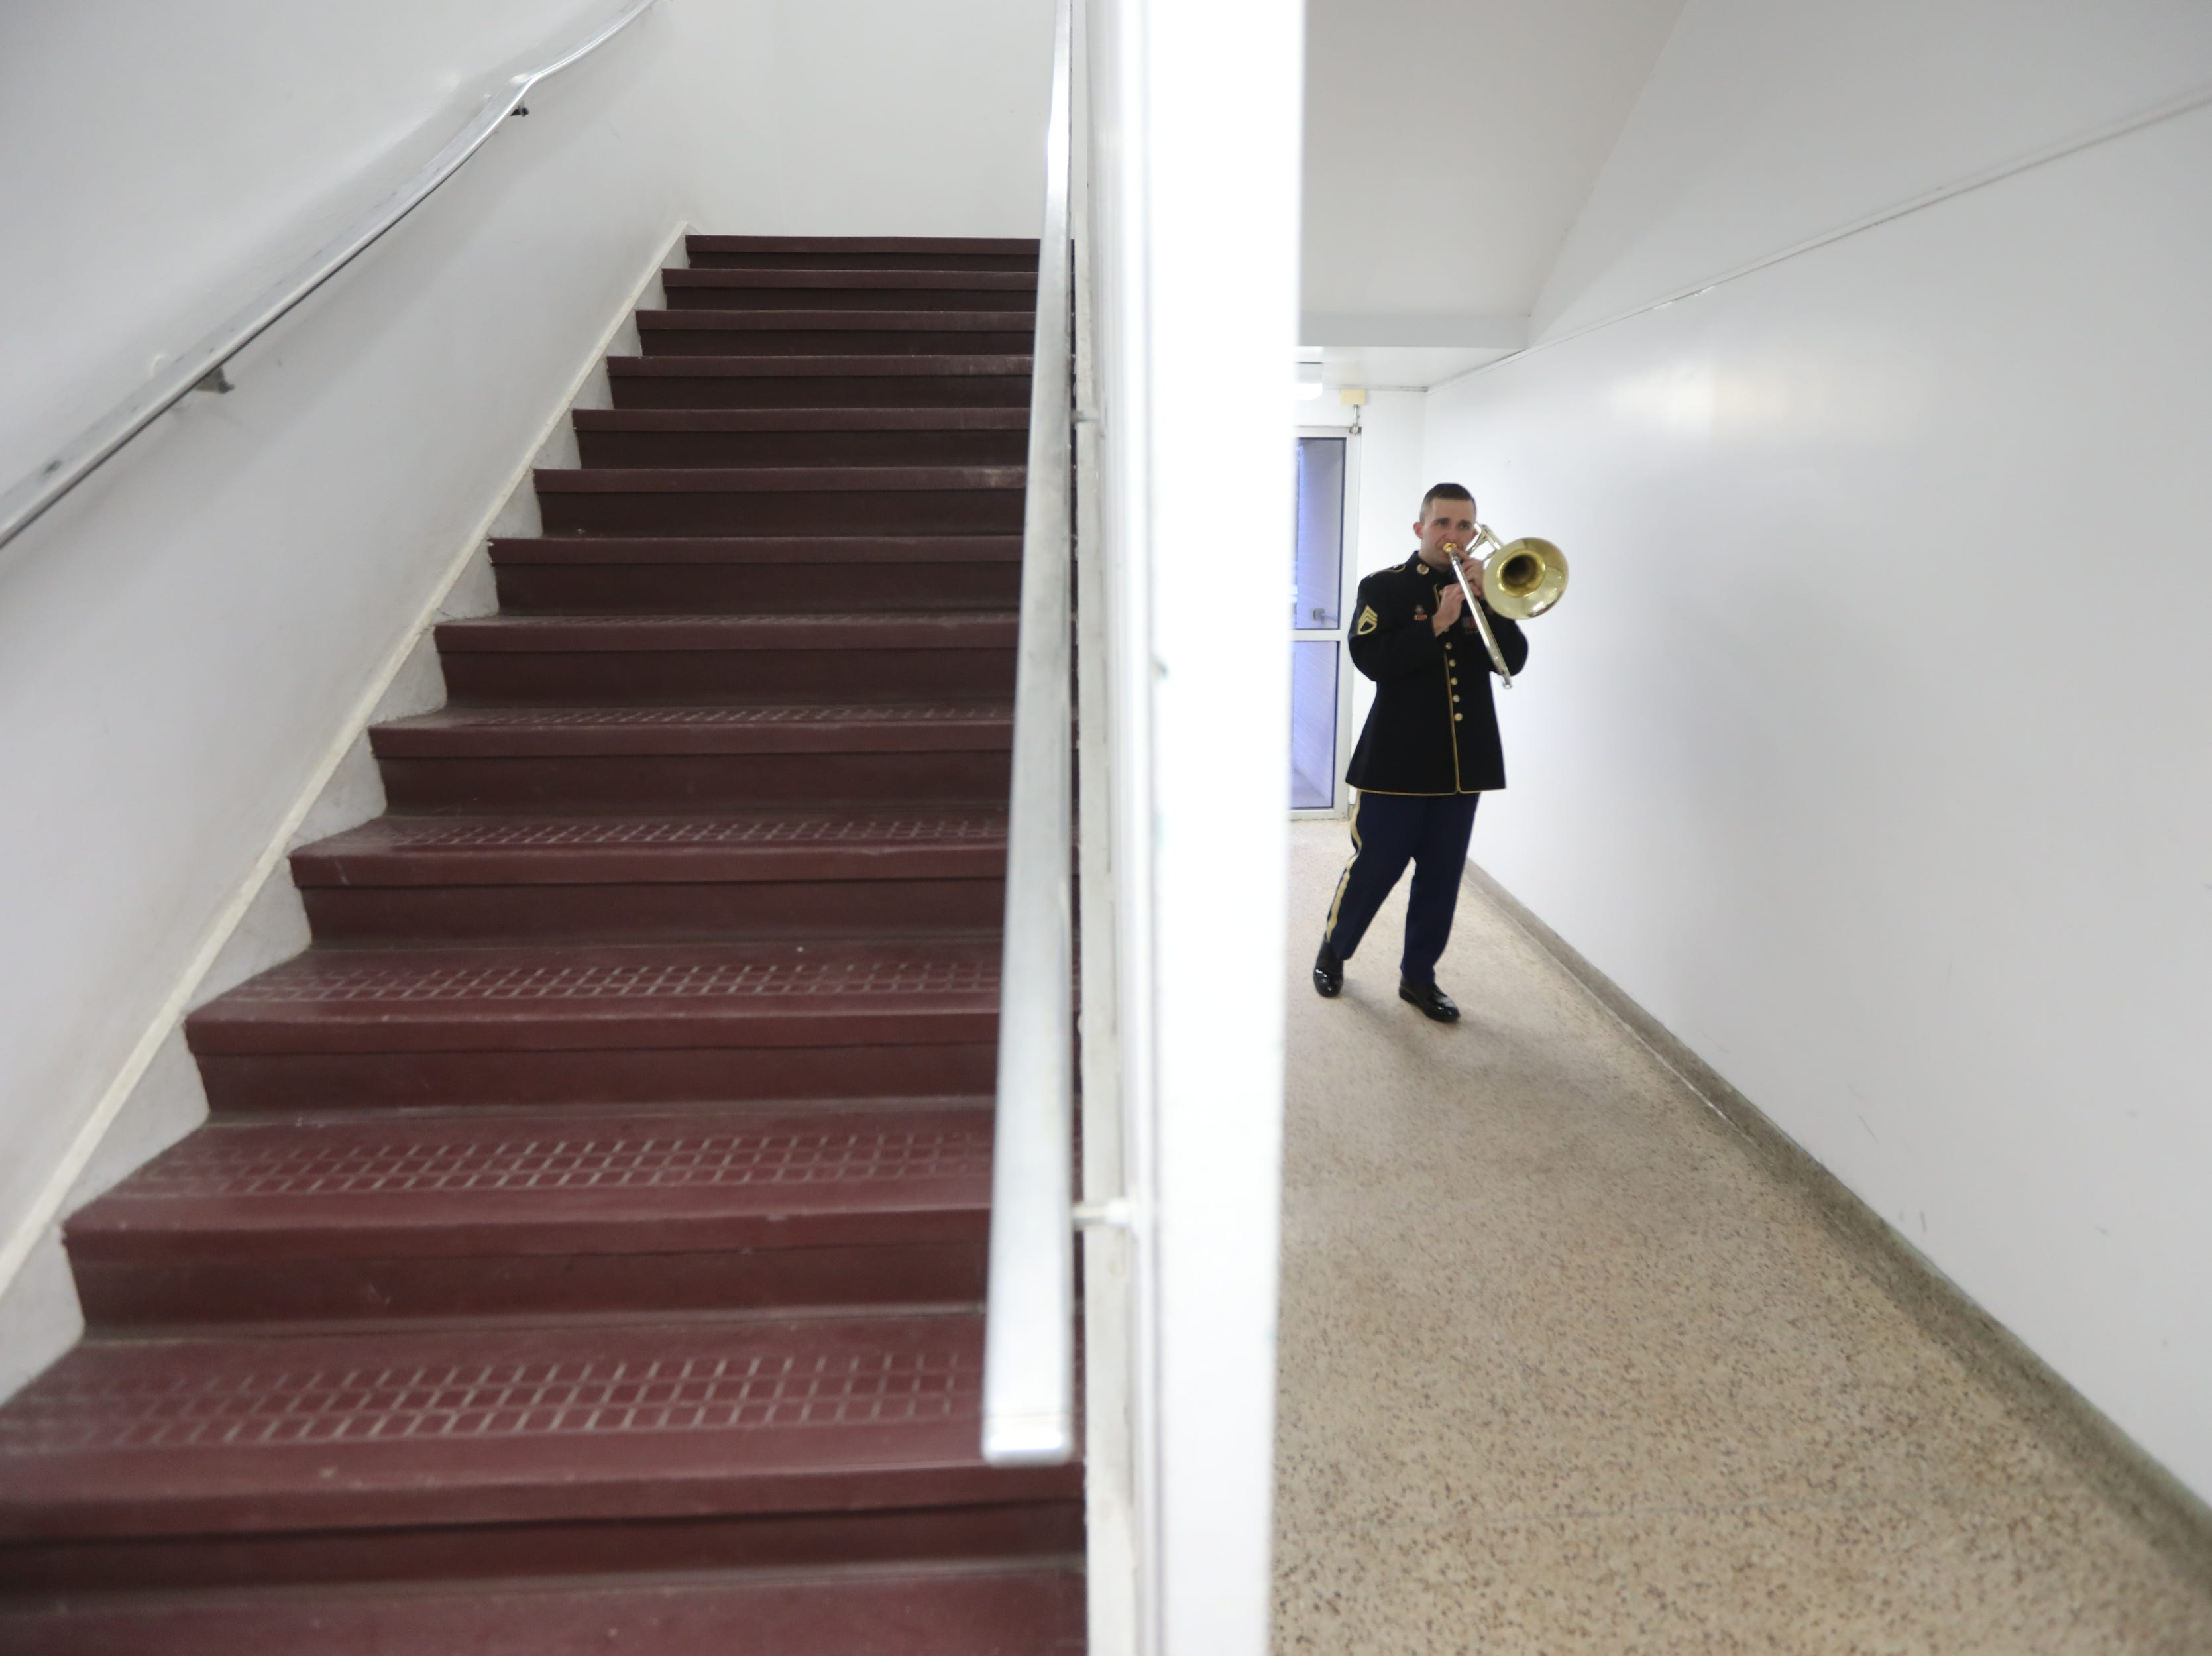 Staff Sgt. Casey practices the bass trombone, in Wayne, before the start of the concert.  The United States Army Jazz Ambassadors Field Band performed at Wayne Hills High School, Thursday, March 21, 2019.  This was the eleventh day of their tour, which lasts more than a month.